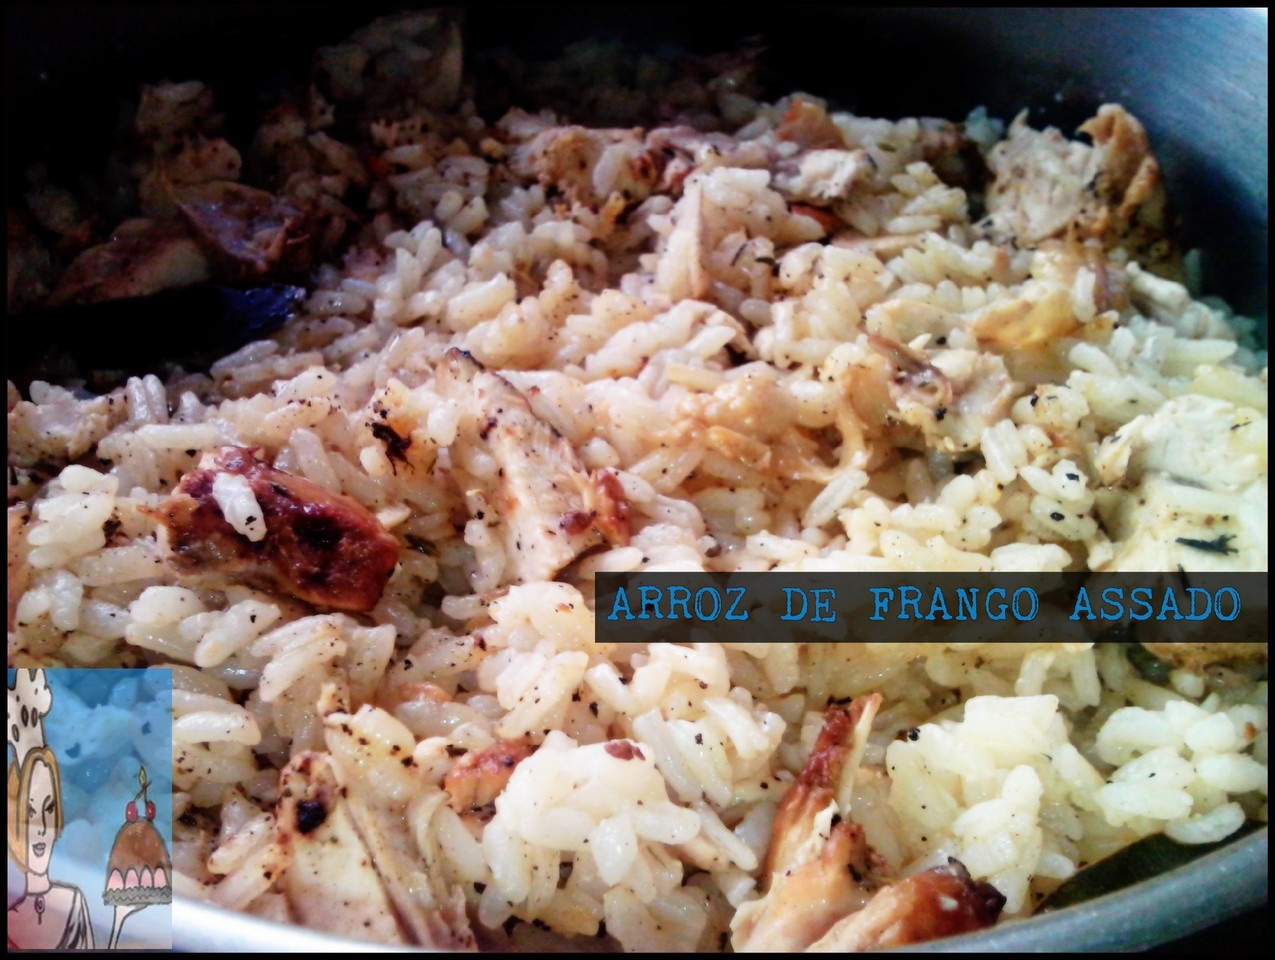 arroz de frango assado